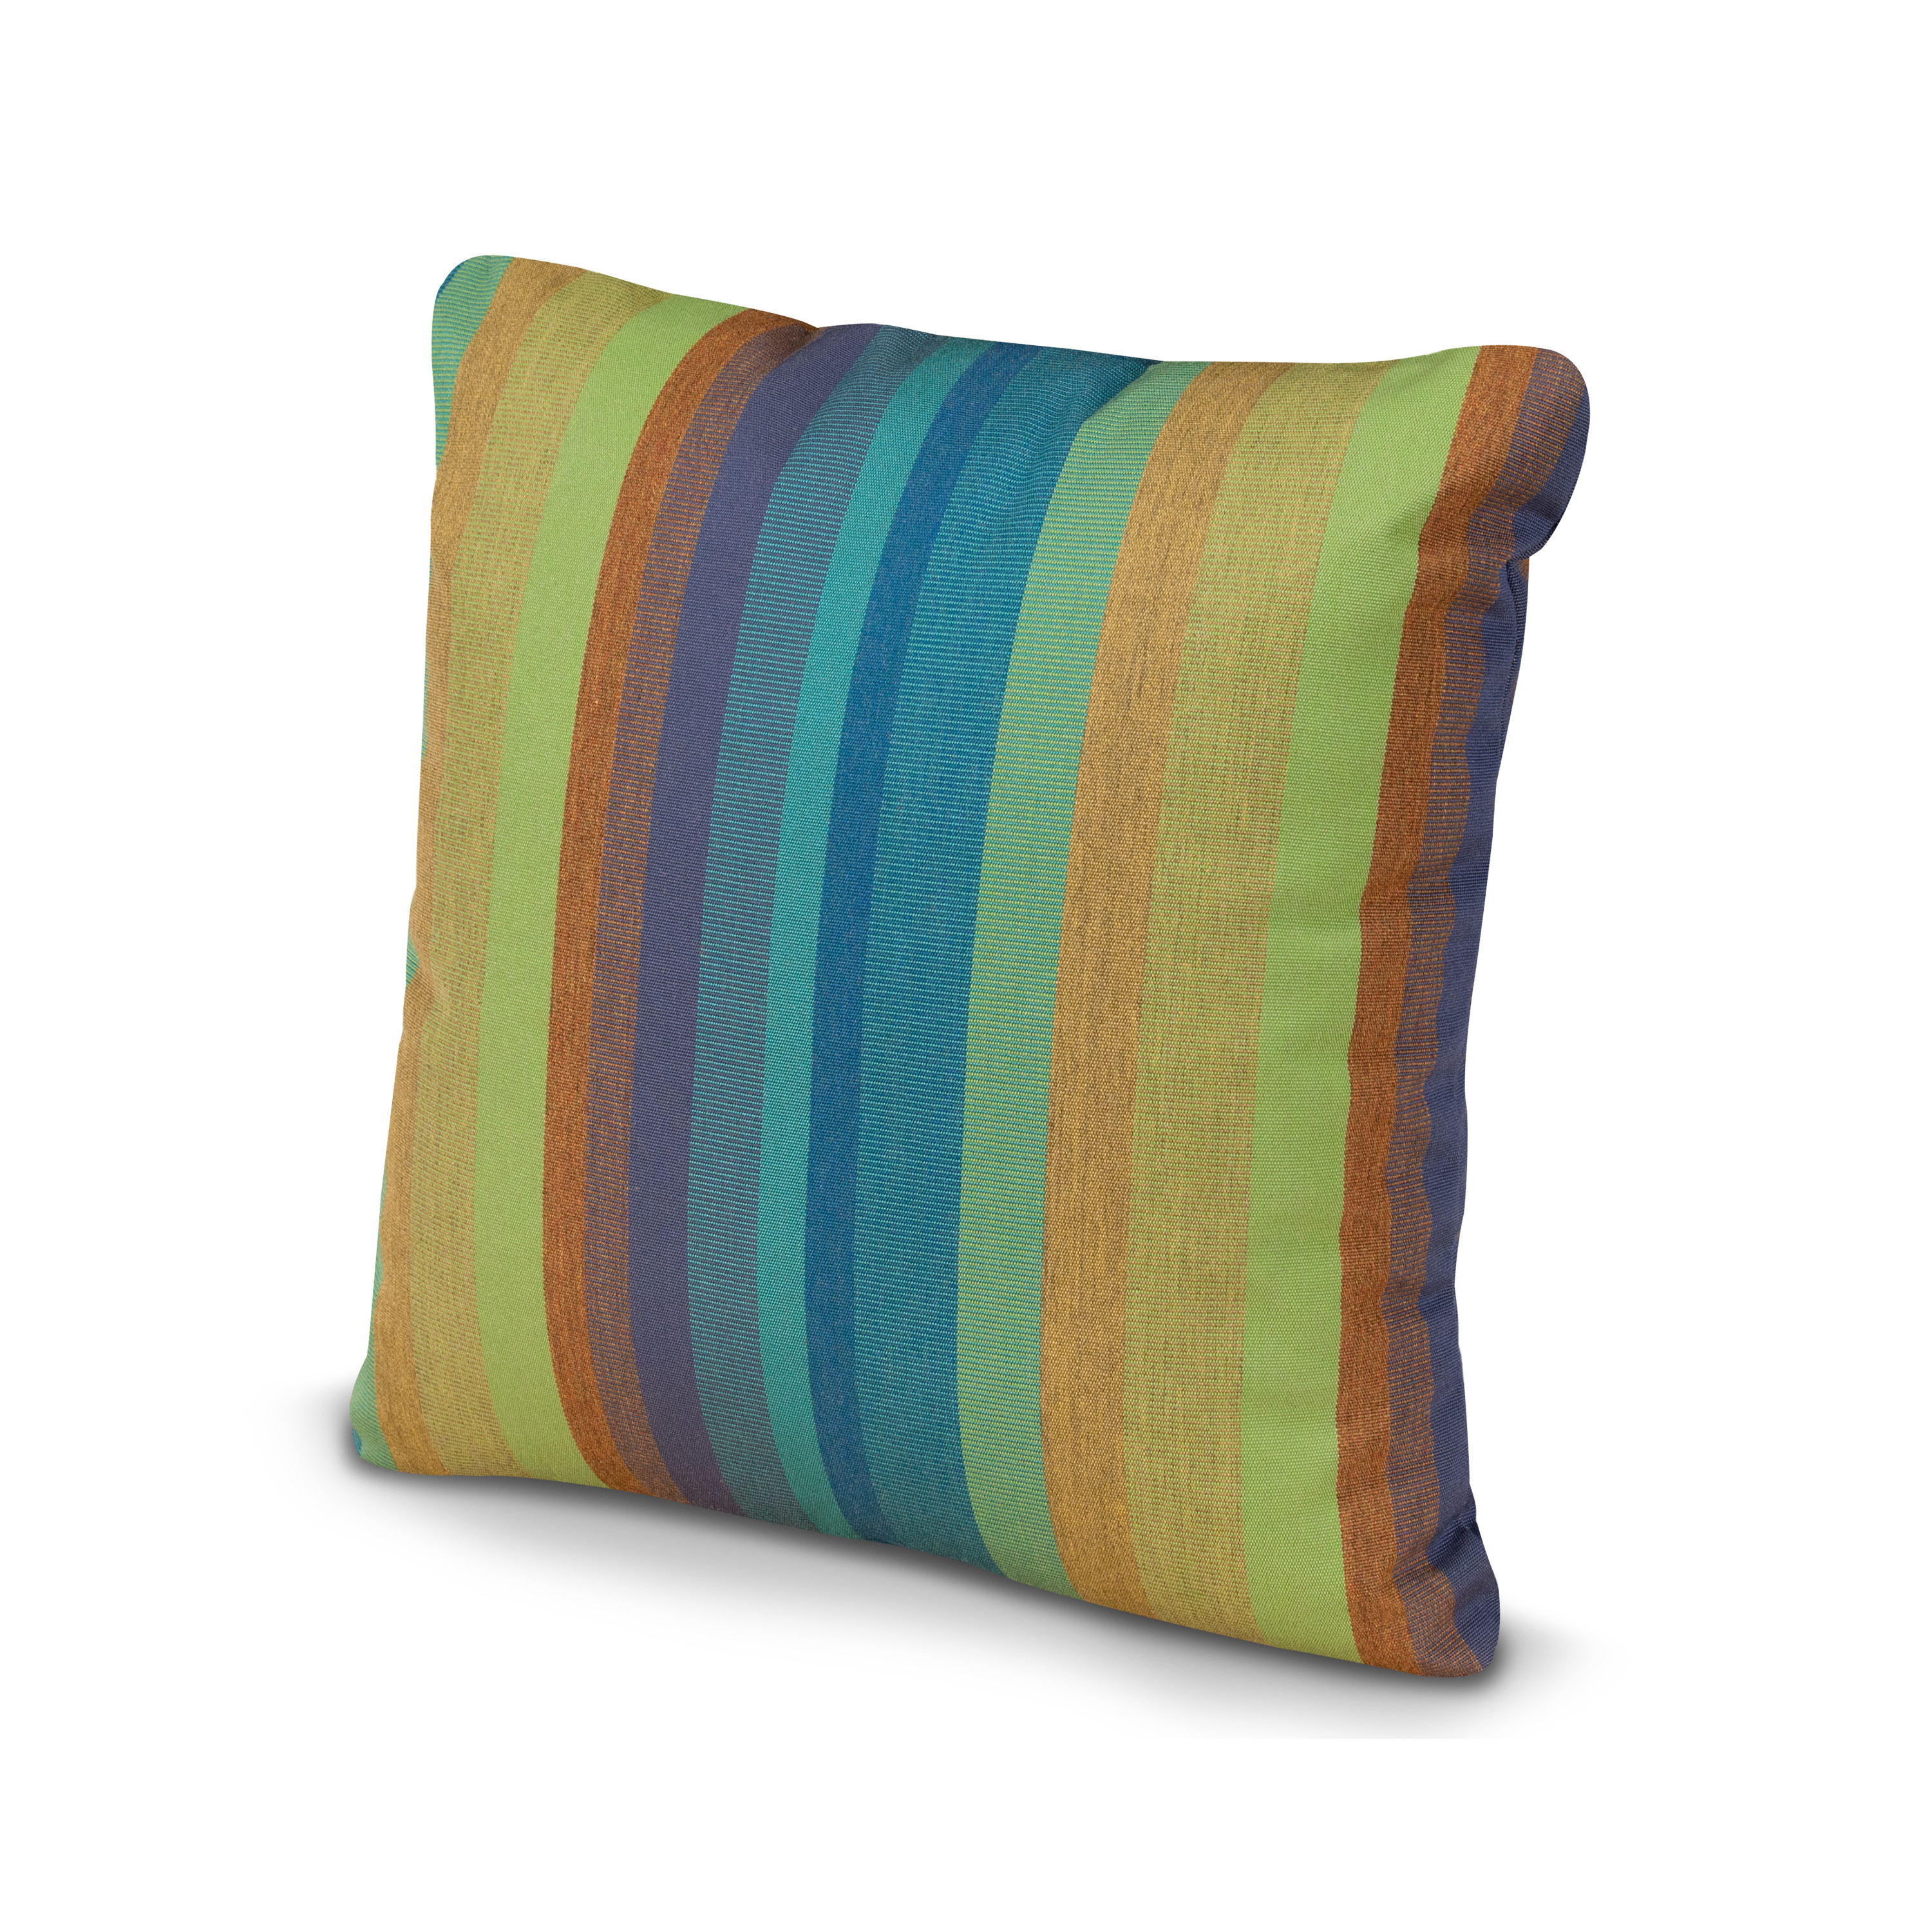 Sofa Pillows Contemporary: Superb Sofa Accent Pillows Design